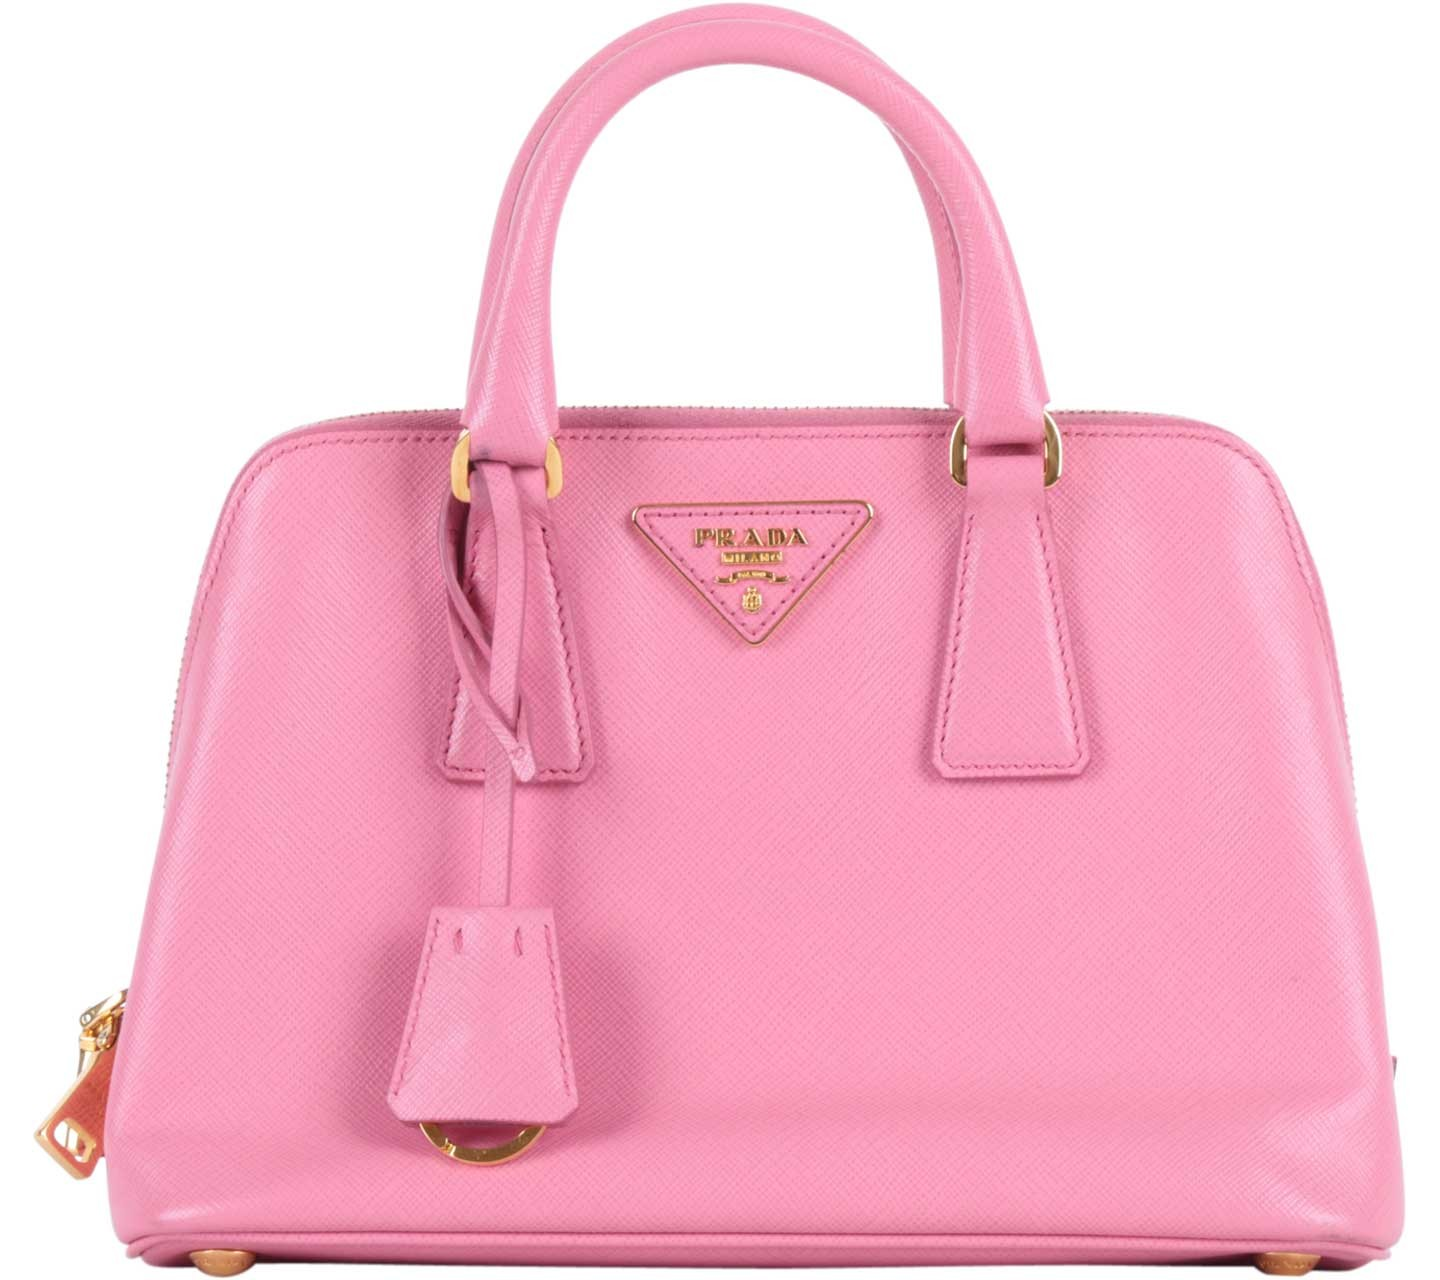 prada wallet in chain - Prada Pink Alma Handbag